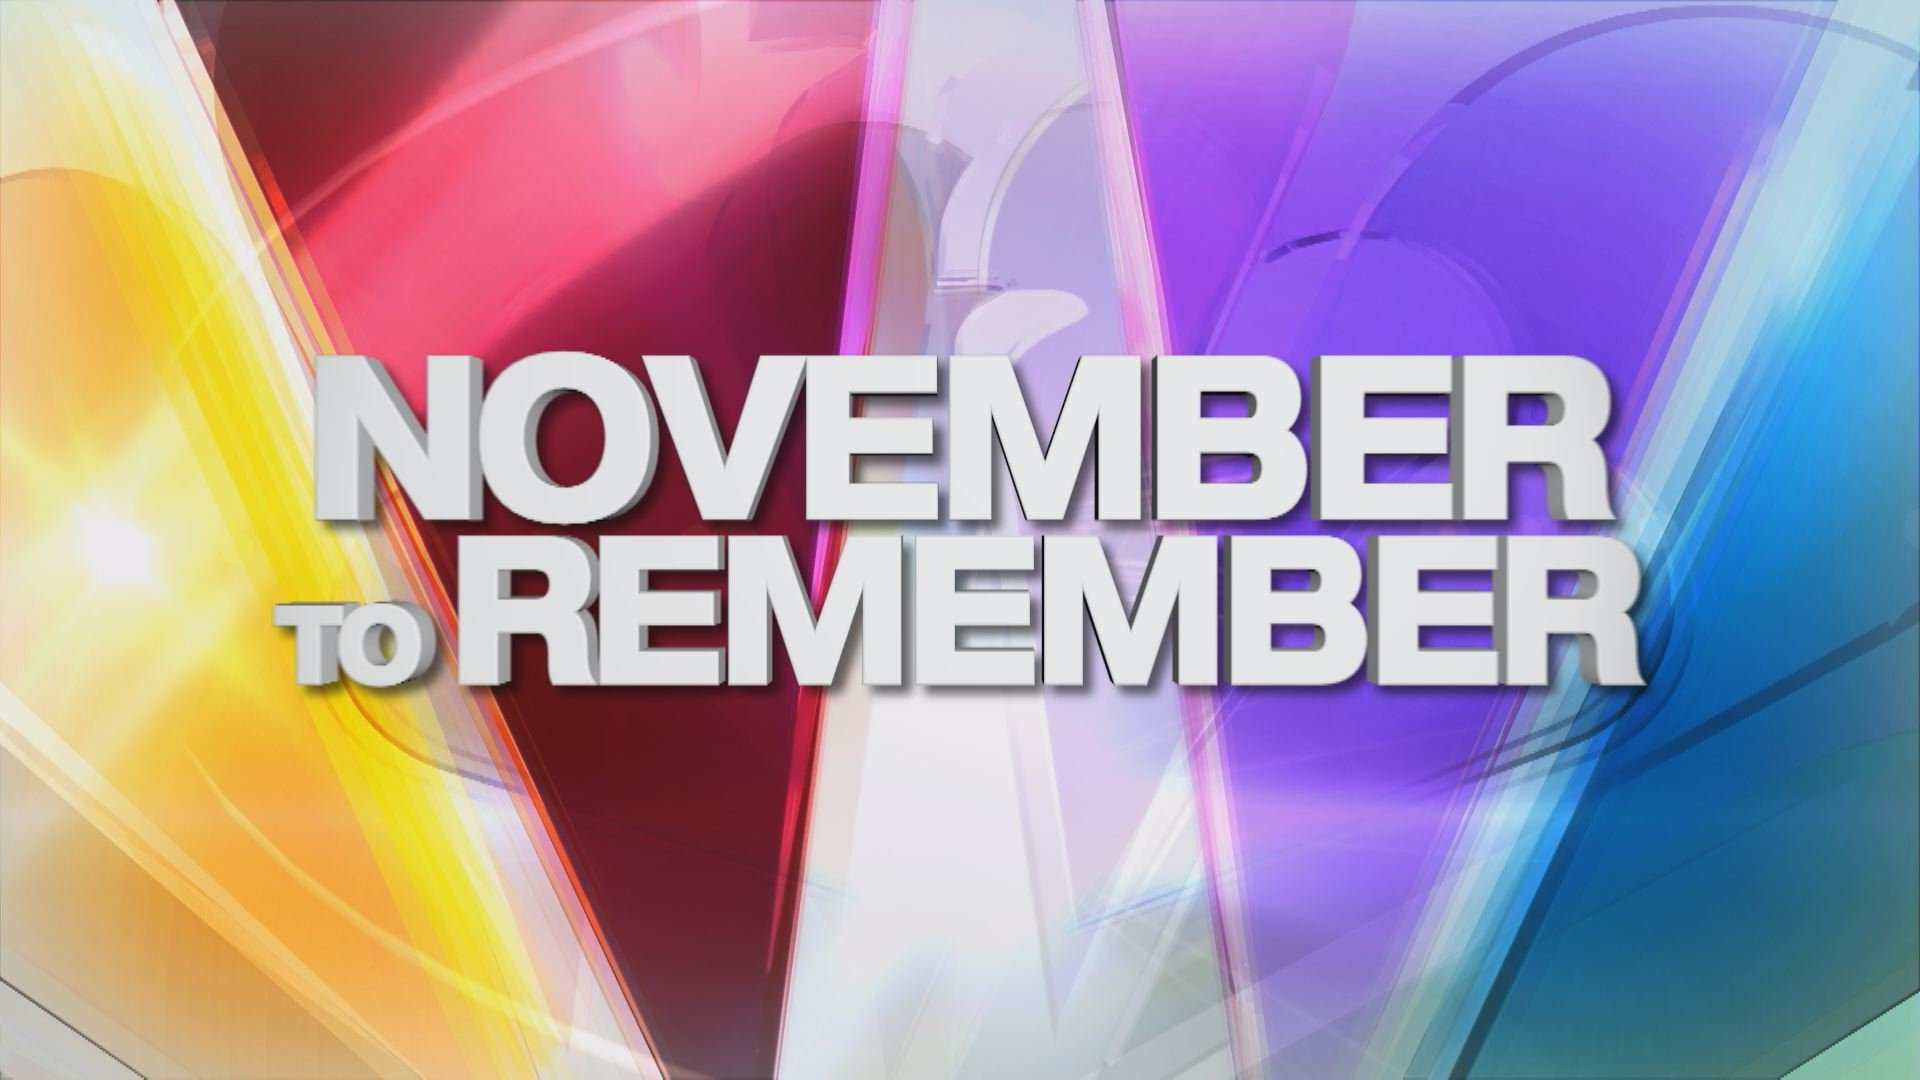 November to Remember: LIVE in Indio at Martha's Kitchen tomorrow - Palm Springs News, Weather ...